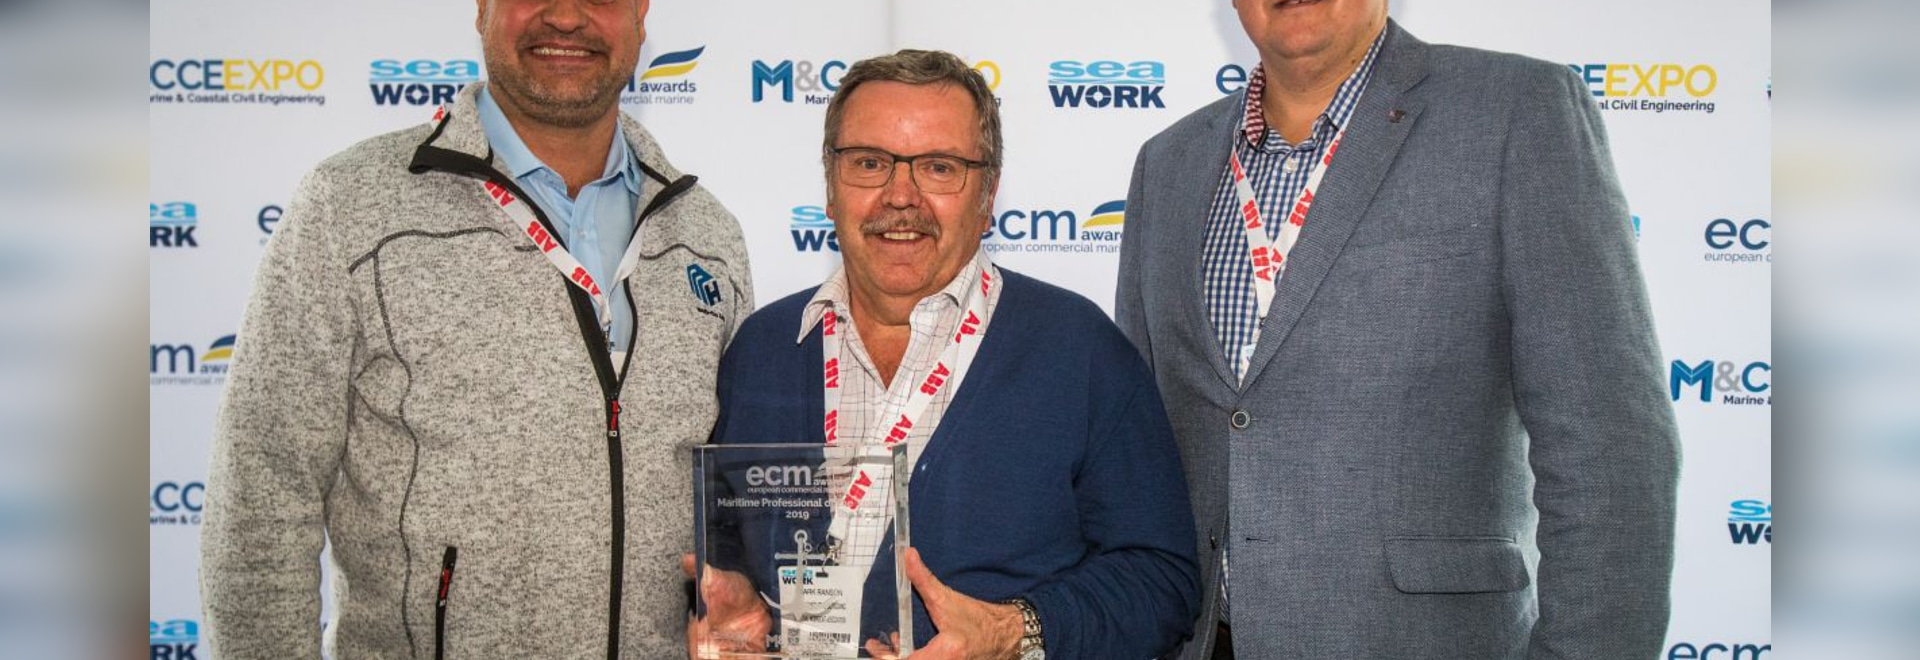 Maritime Professional of the Year Award winner Mark Ranson - National Workboat Association